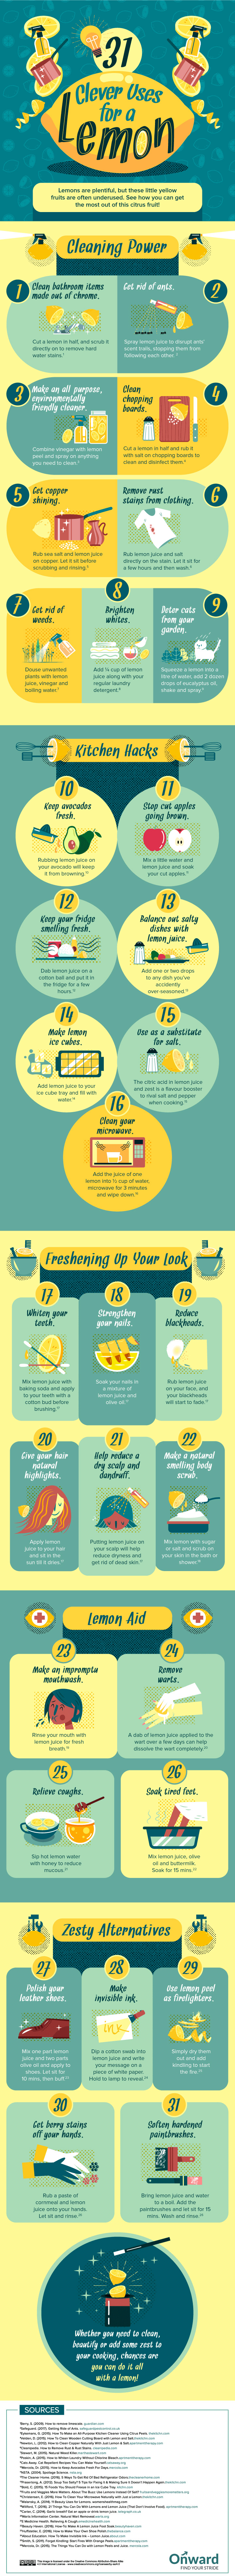 From Lemon to Super-Lemon - 31 Amazing Ways to Use a Lemon - Infographic